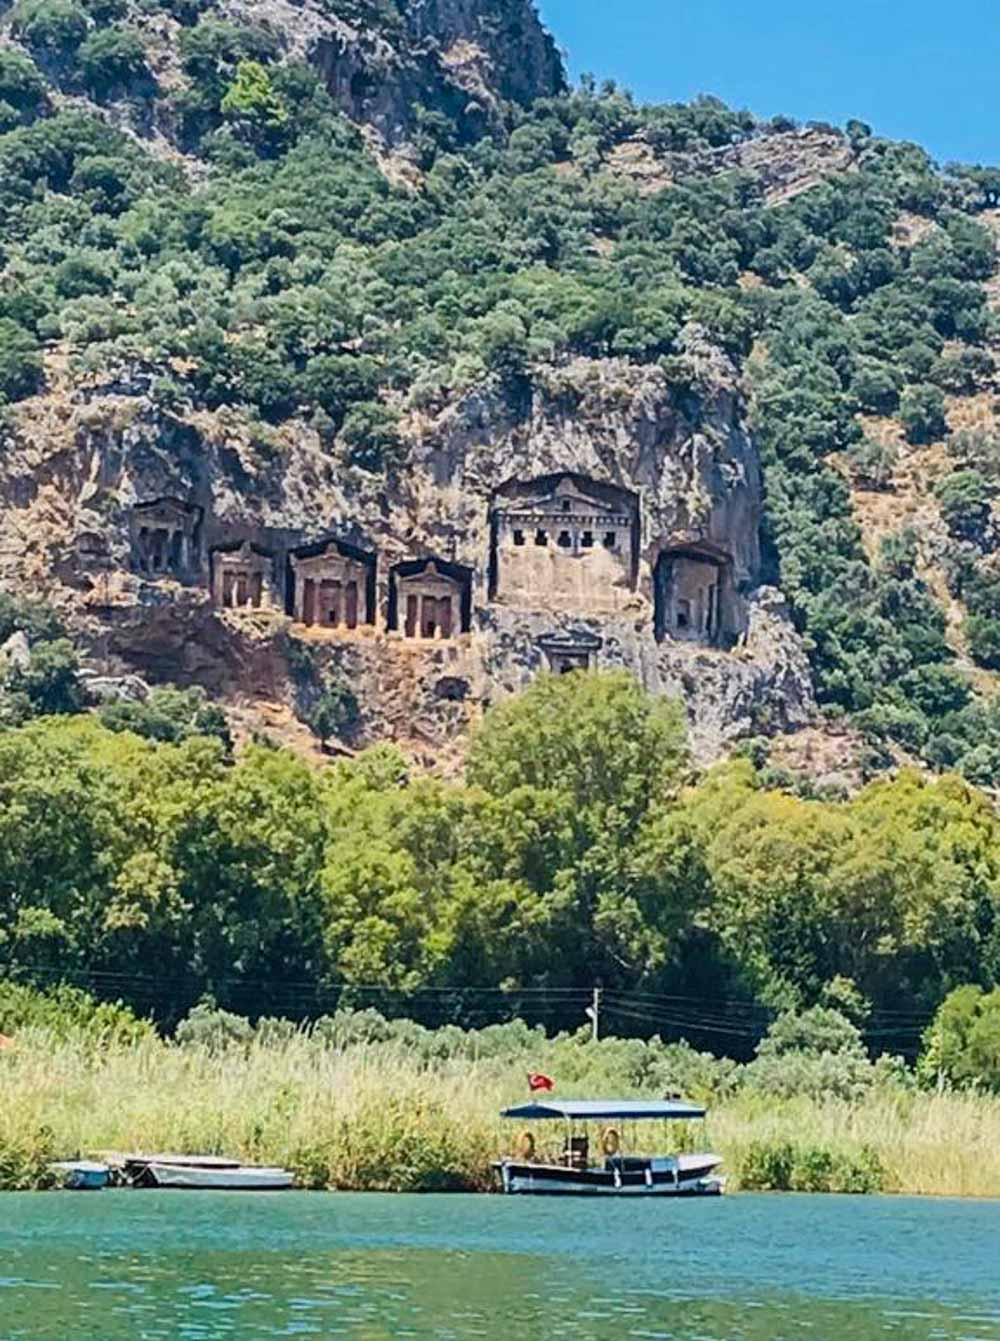 tombs-in-cliffs Sail Away On The Aegean Sea With Your Own Private Gulet